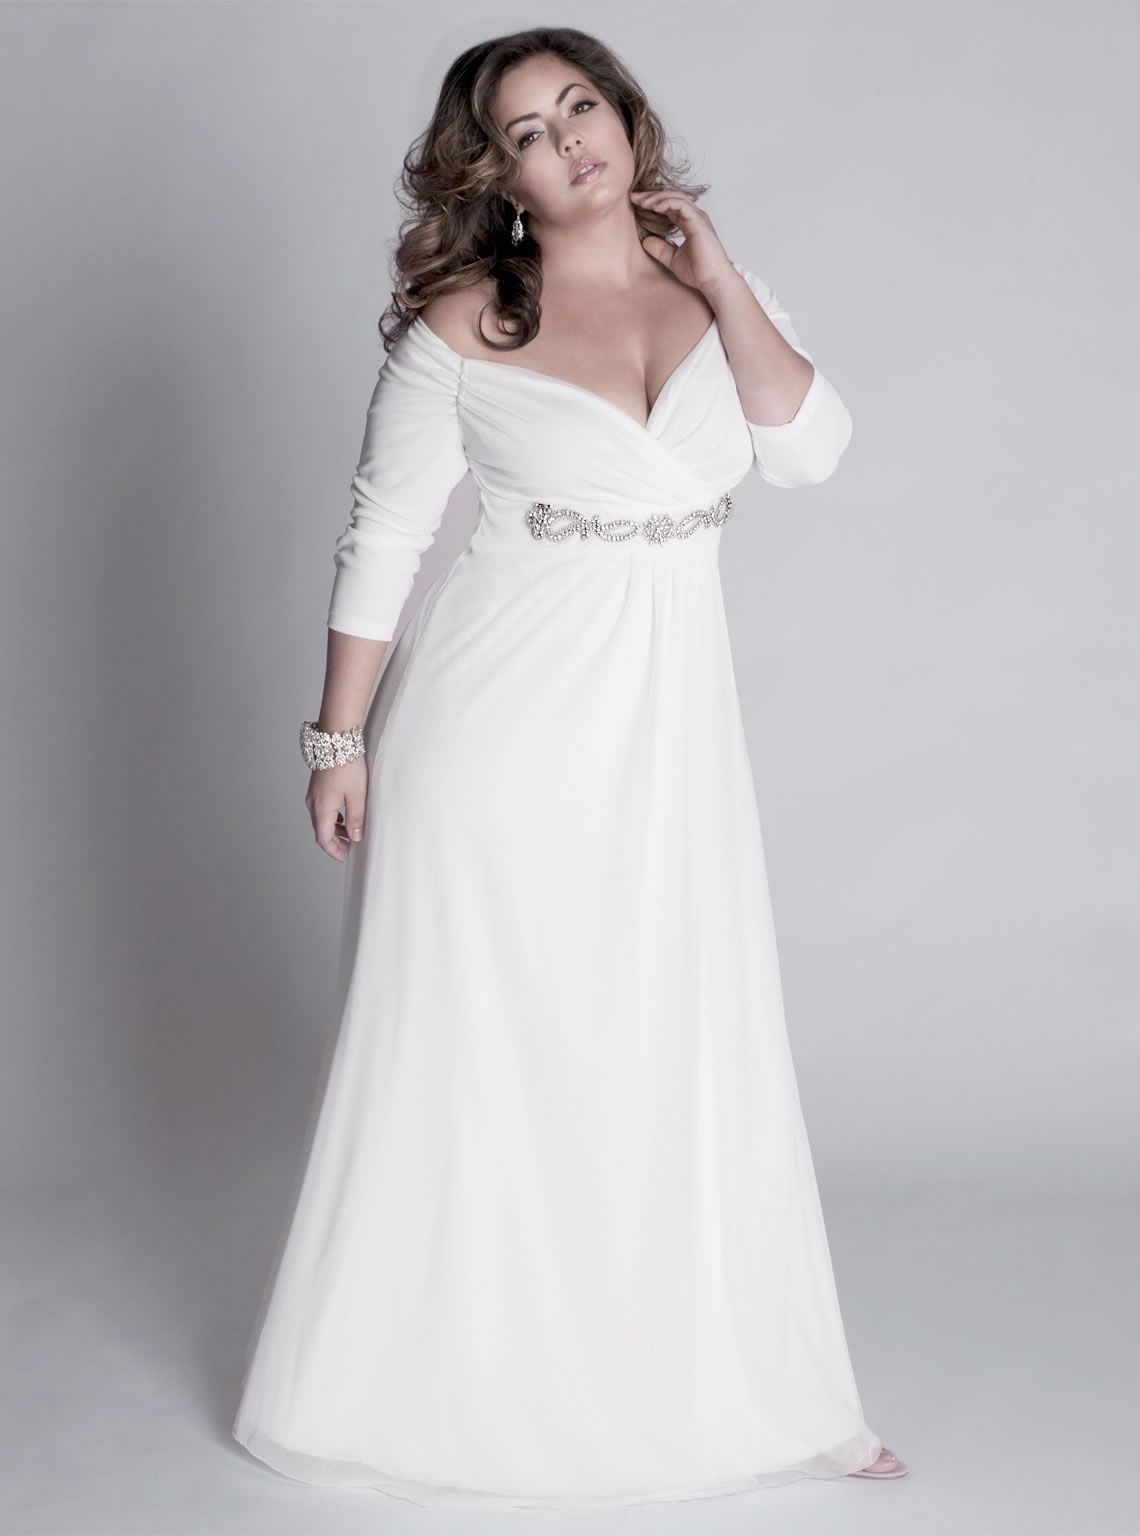 Wedding dresses for big women  Plus Size Evening Dresses  Formal Plus Size Ball Gowns by Darius